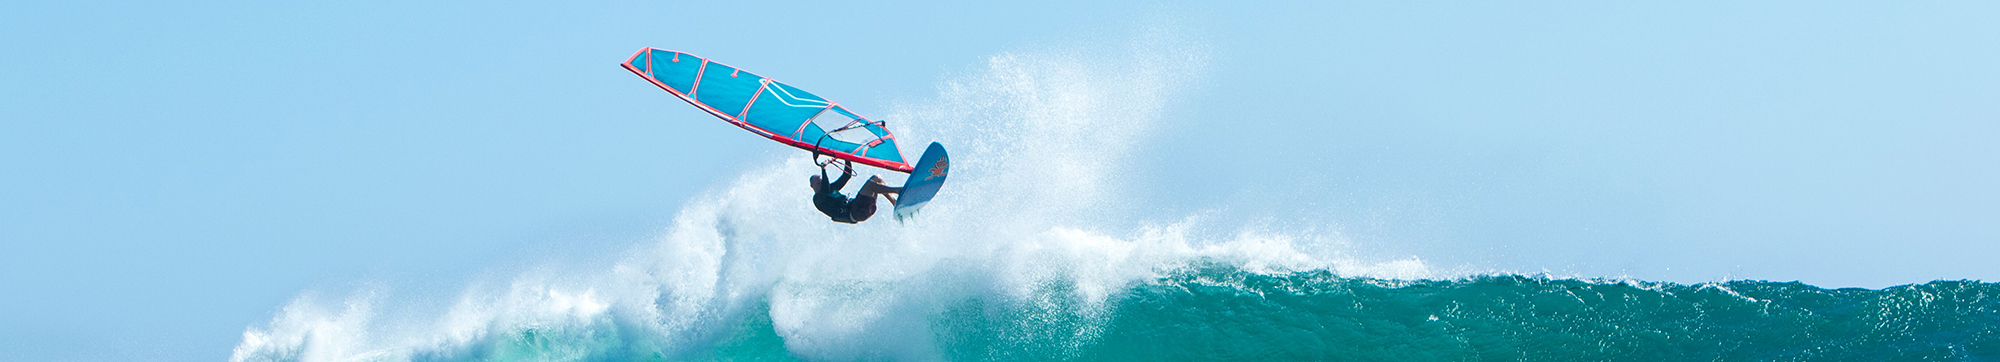 Windsurfing at AndyBiggs Watersports